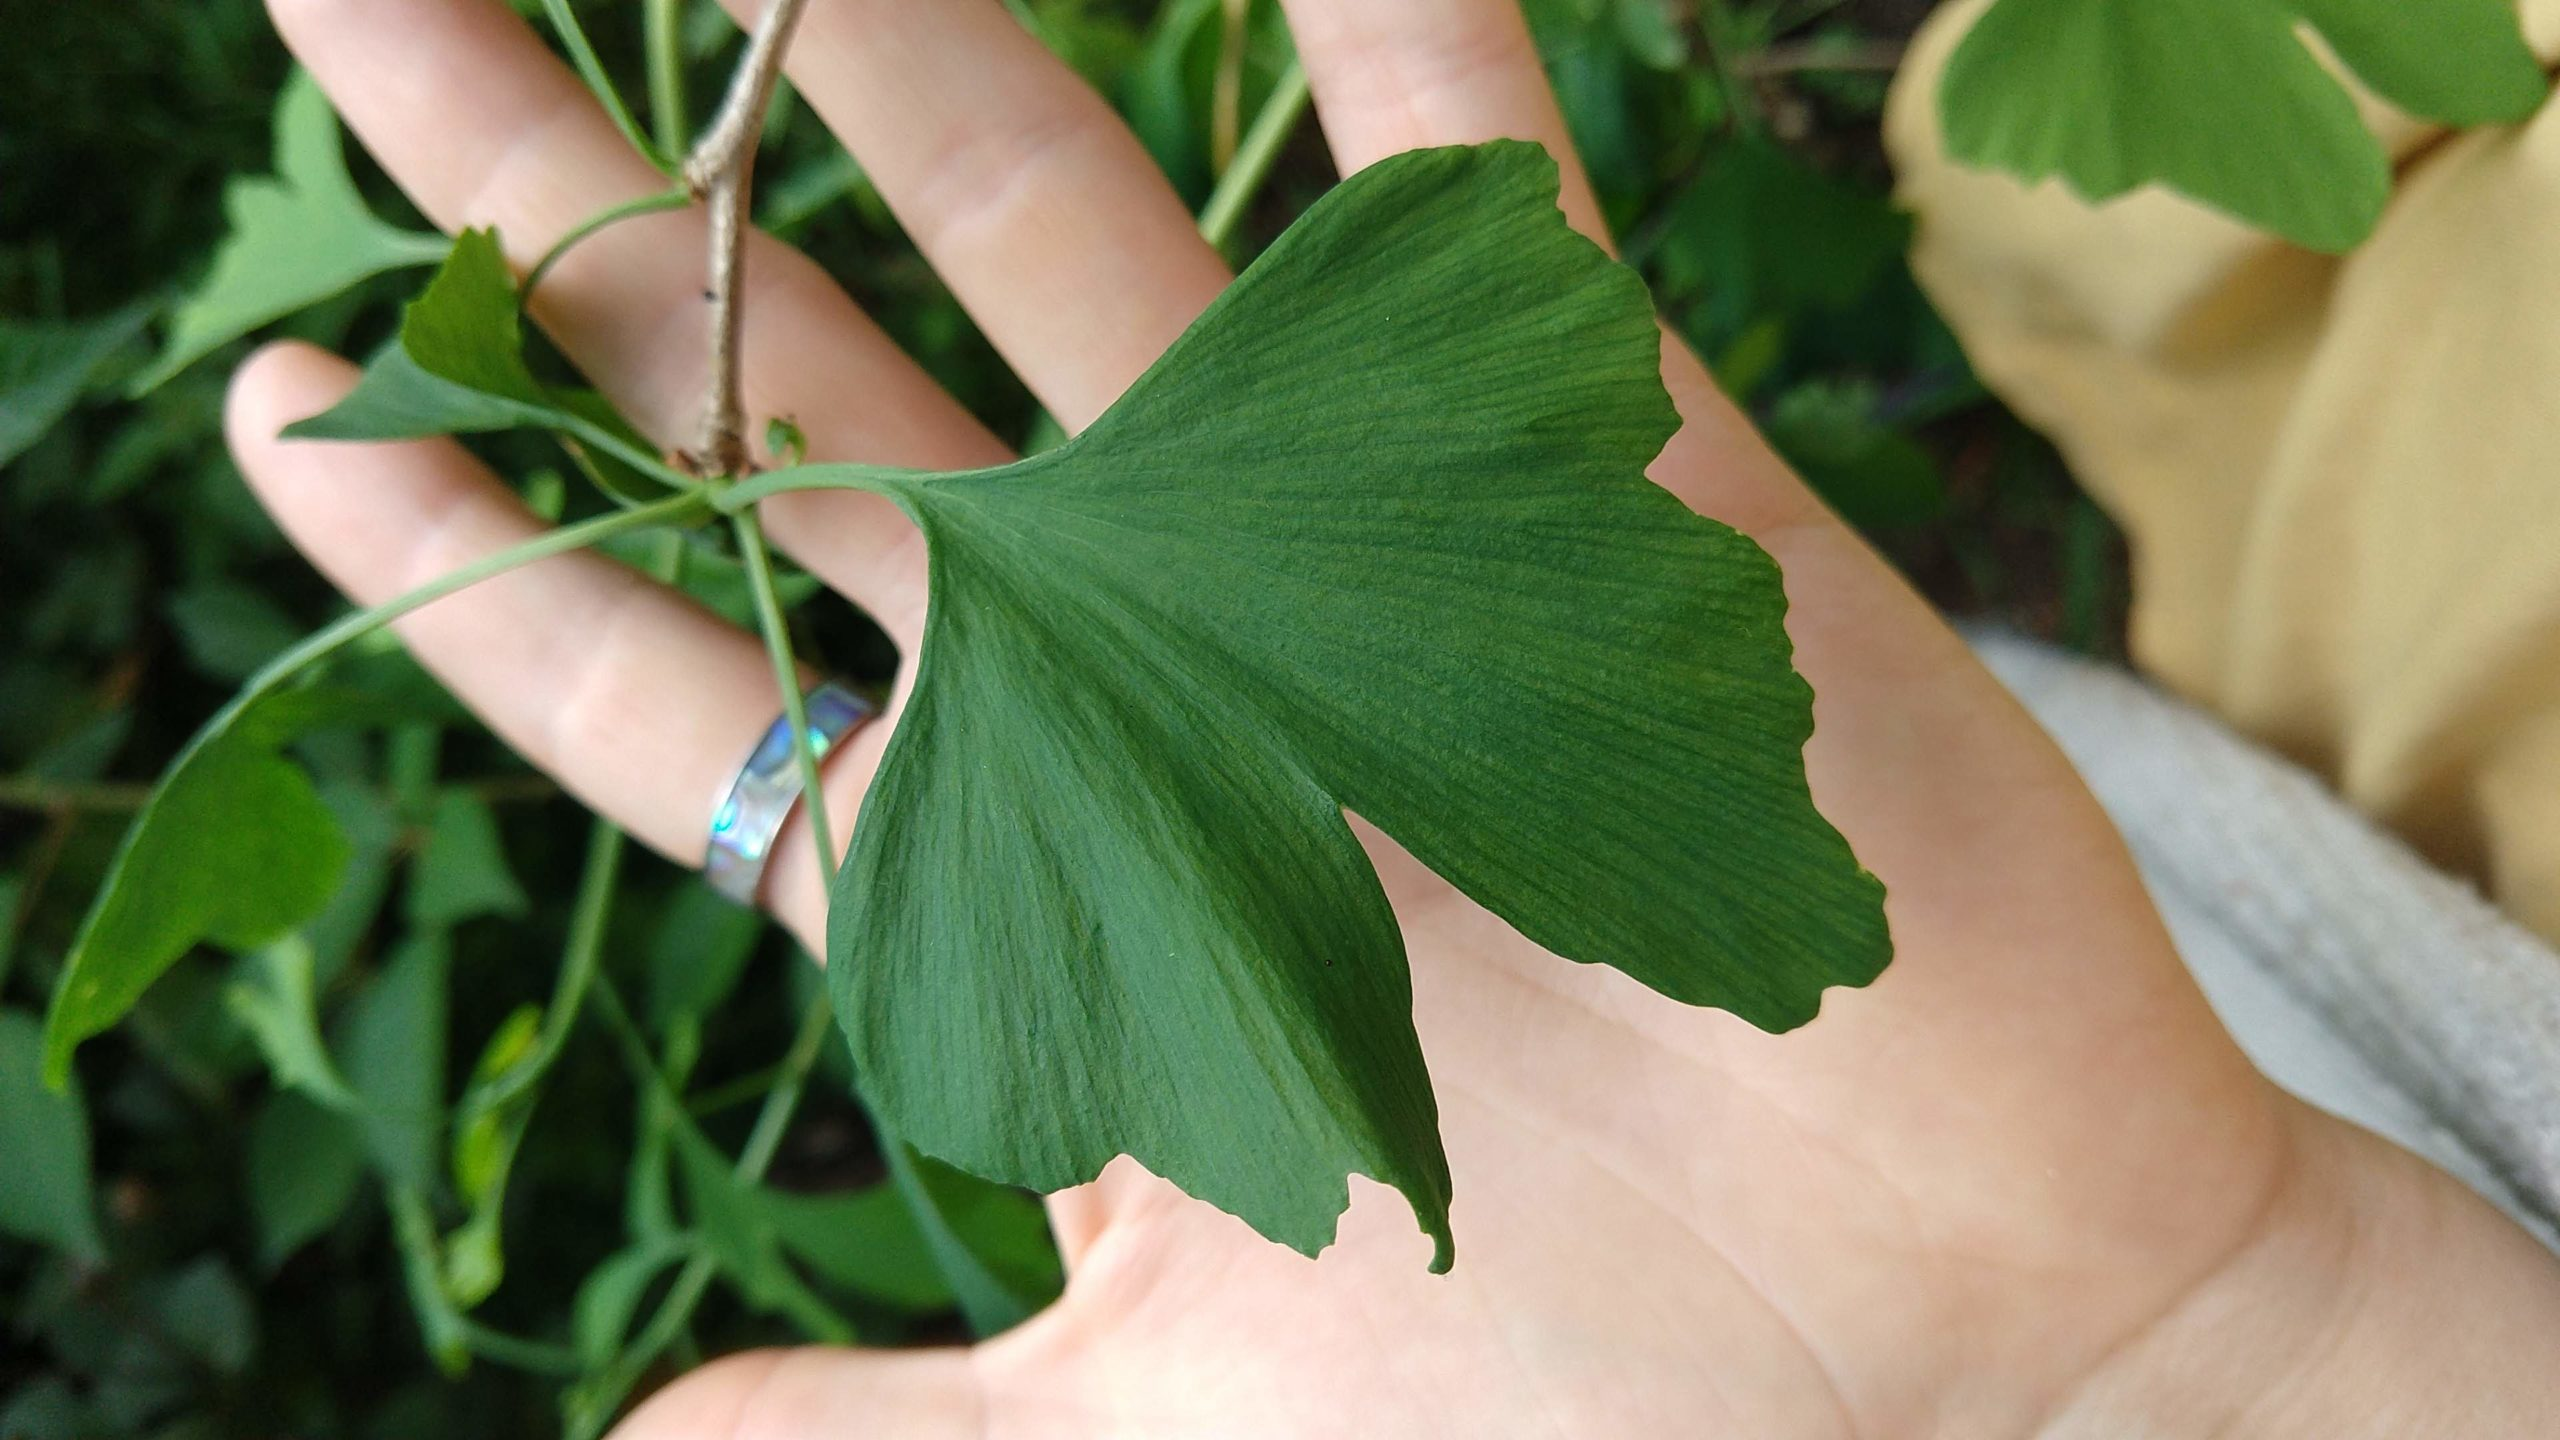 Gingko leaves are best harvested when they begin changing colour from green to yellow in late summer